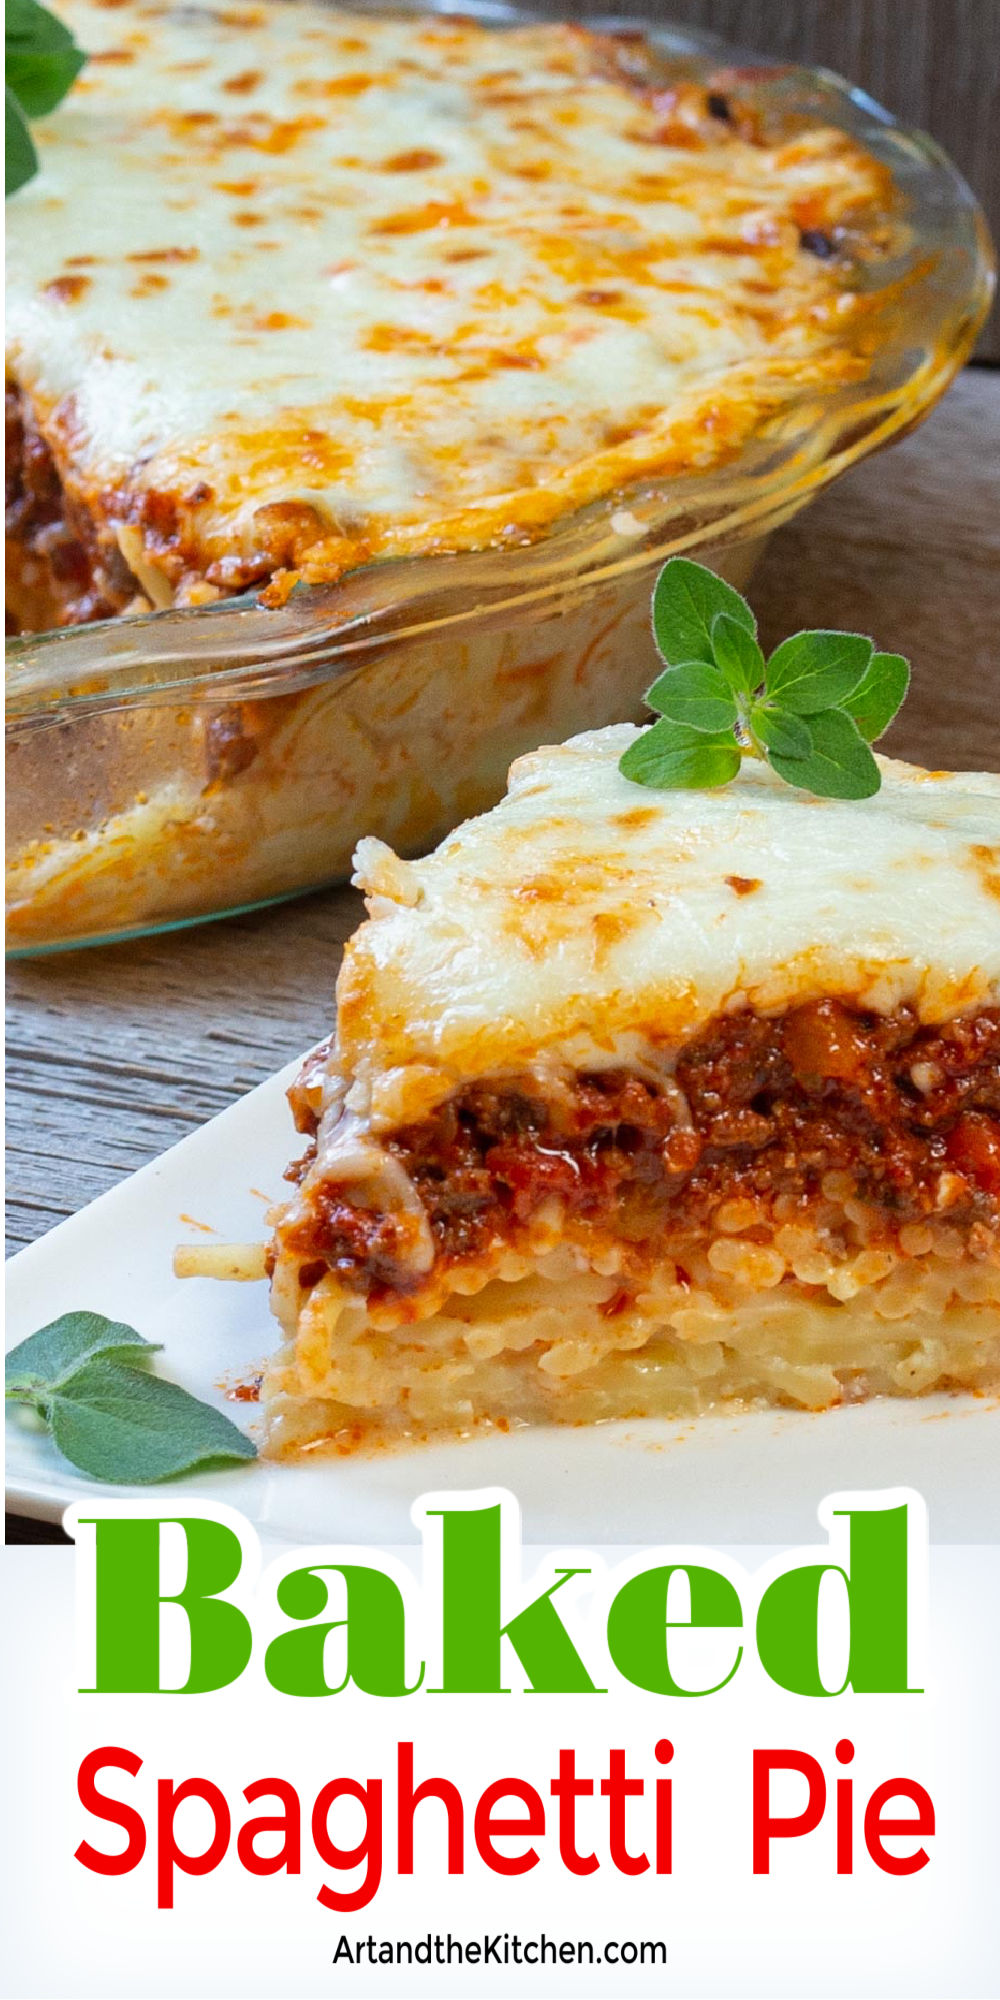 This Baked Spaghetti Pie is made with a gruyere cheese and spaghetti layer, a rich homemade meat sauce layer, cottage cheese, then topped with melted cheese! The family will go crazy for this recipe! via @artandthekitch